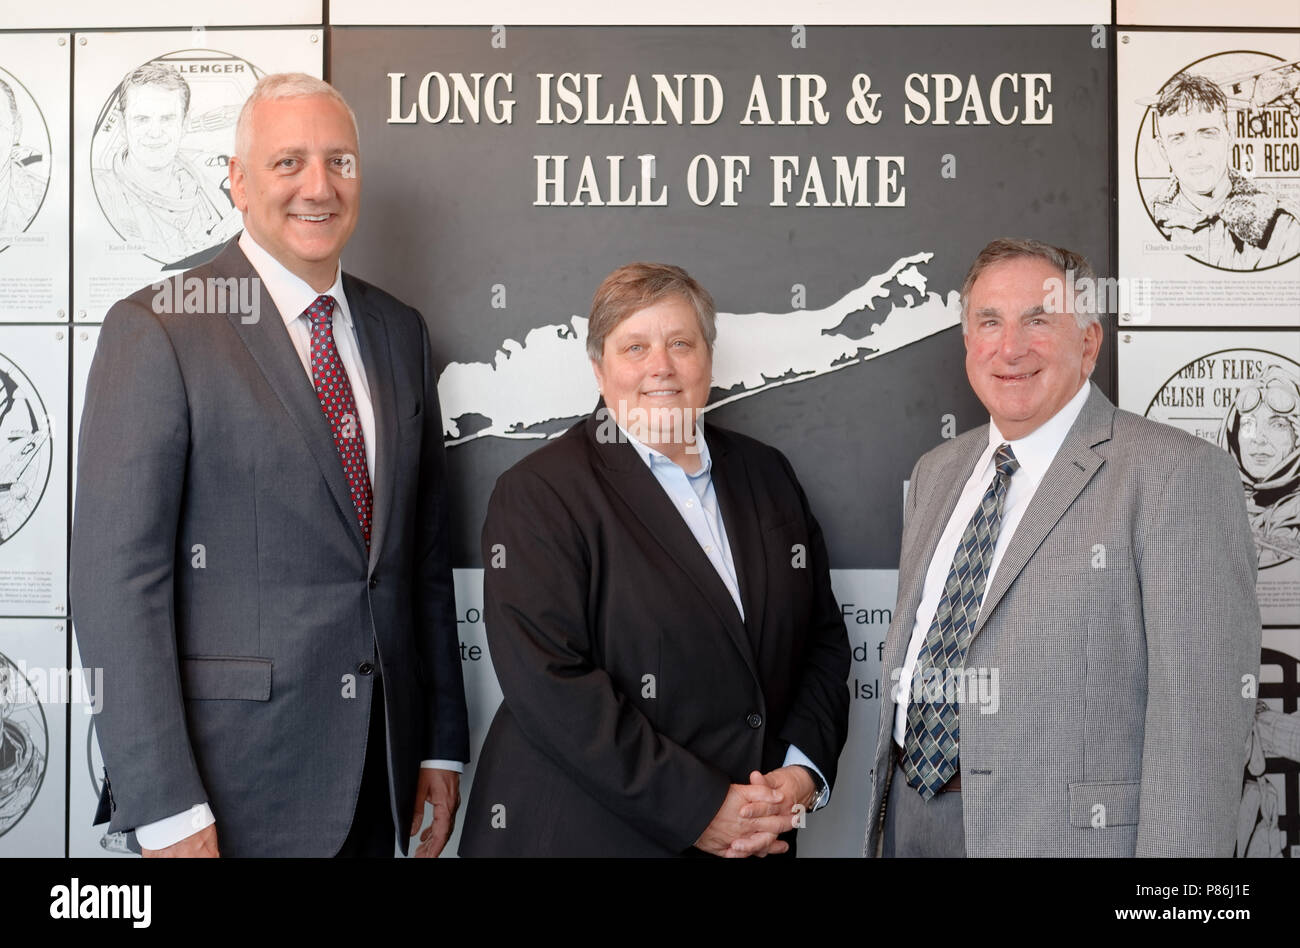 Garden City, New York, USA. 21st June, 2018. L-R, Inductee former NASA astronaut MIKE MASSIMINO; and DEBORAH HENLEY, VP Executive Editor of Newsday, representing inductee aviator and Newsday founder Alicia Patterson; and LOUIS MANCUSO JR, representing his parents, inductees Louis and Carol Mancuso, pose at Cradle of Aviation Museum during Long Island Air & Space Hall of Fame Class of 2018 Induction. Credit: Ann Parry/ZUMA Wire/Alamy Live News - Stock Image